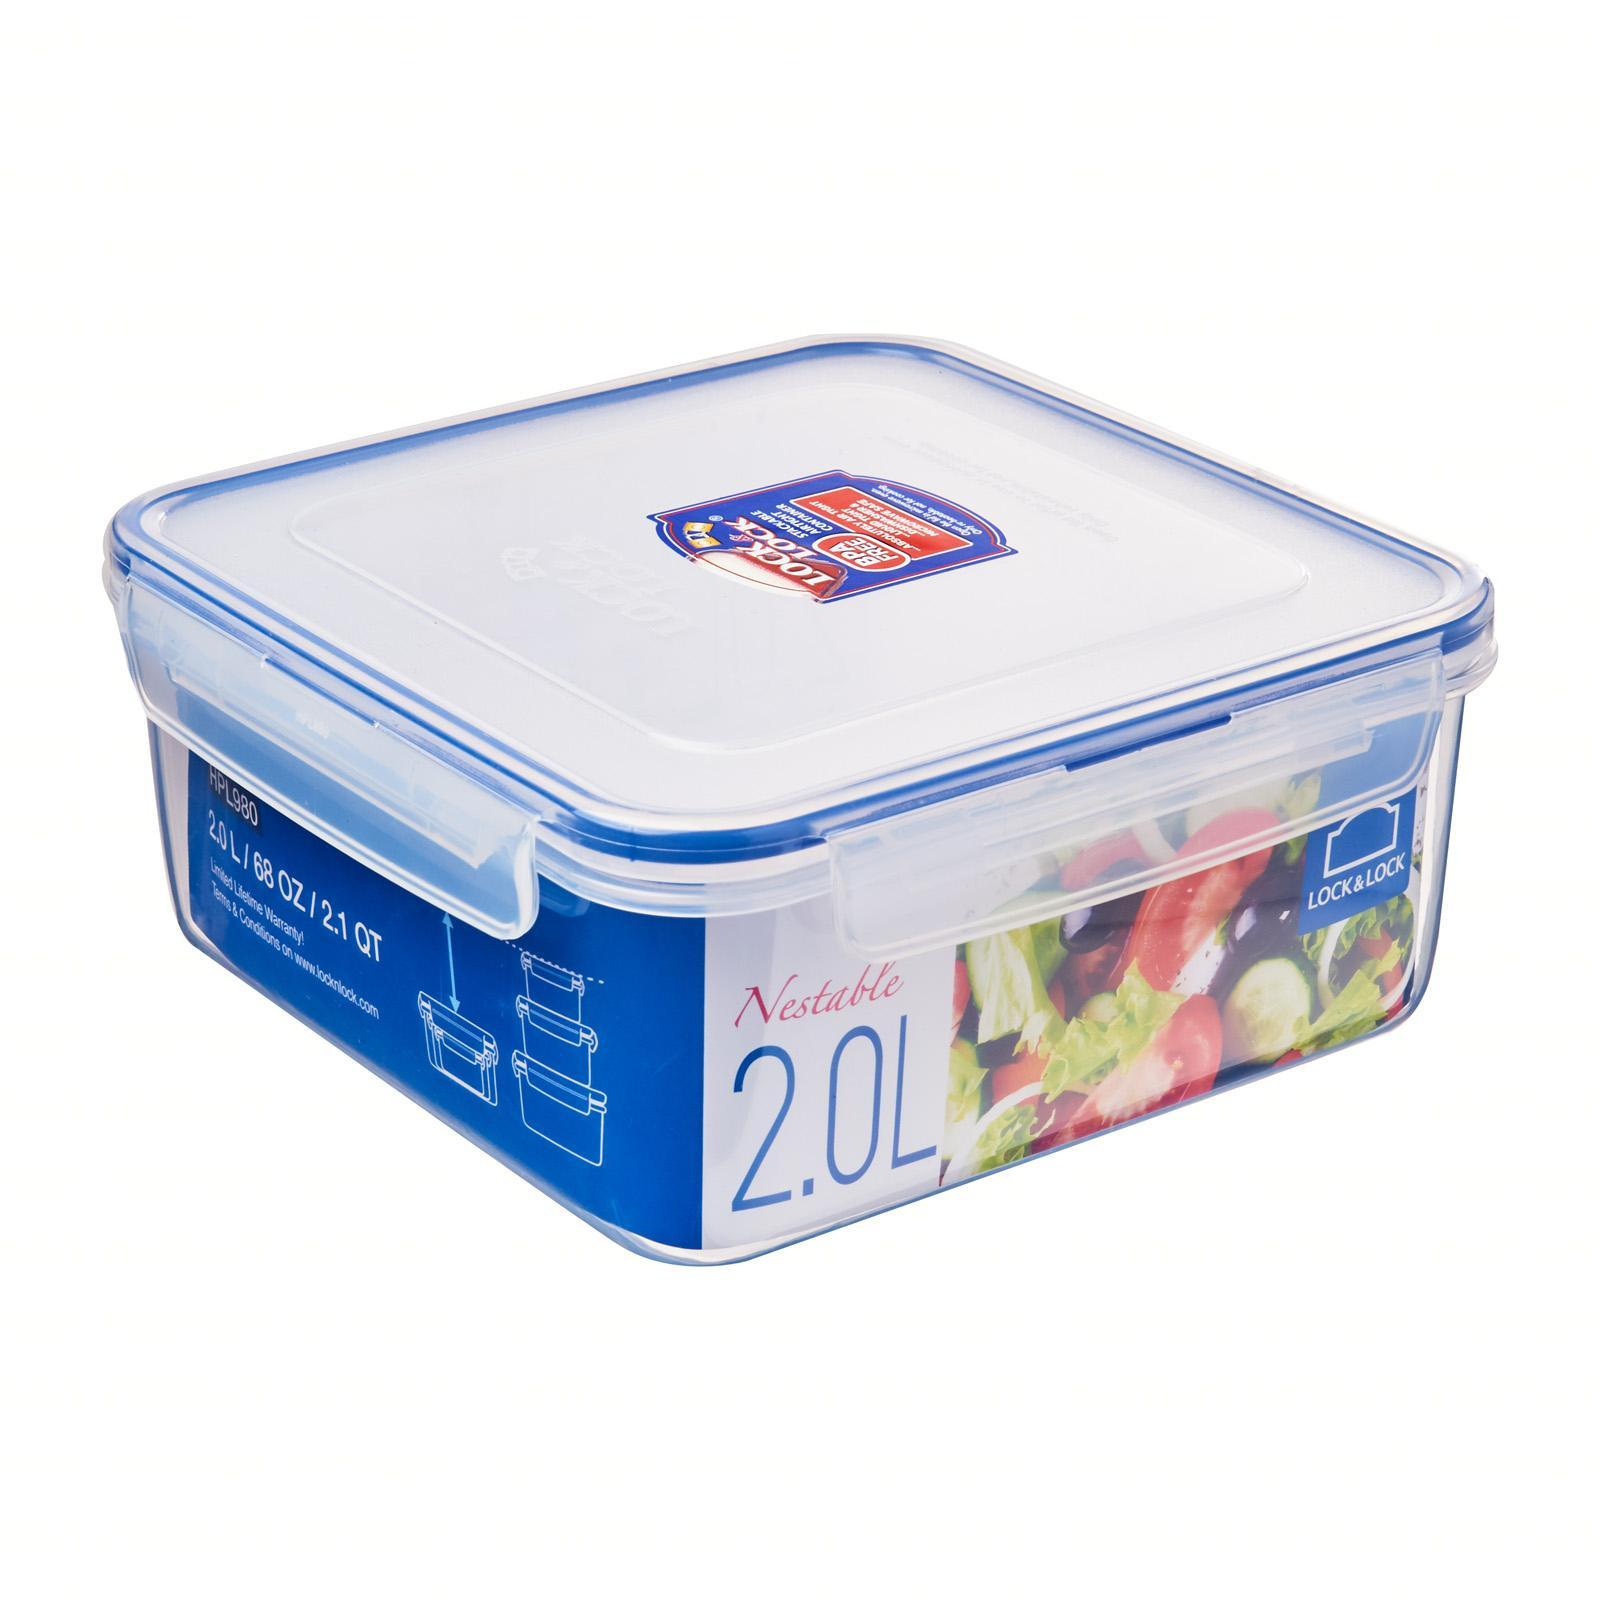 Lock and Lock Nestable Square Food Container 2.0L